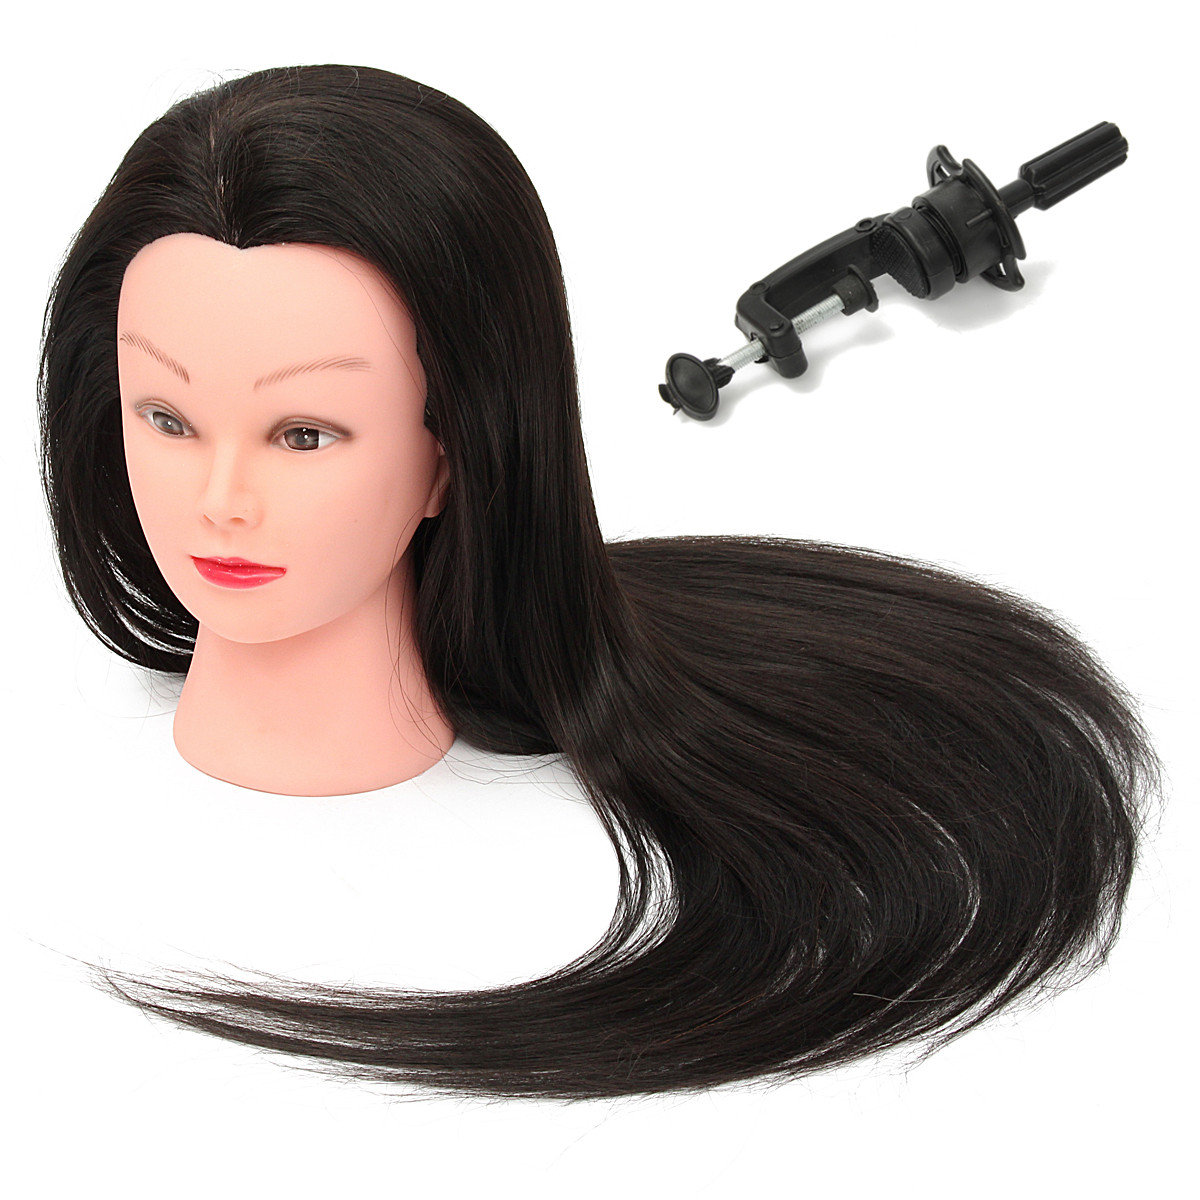 28 Inch 50% Real Long Straight Hair Practice Hairdressing Training Head Model With Clamp